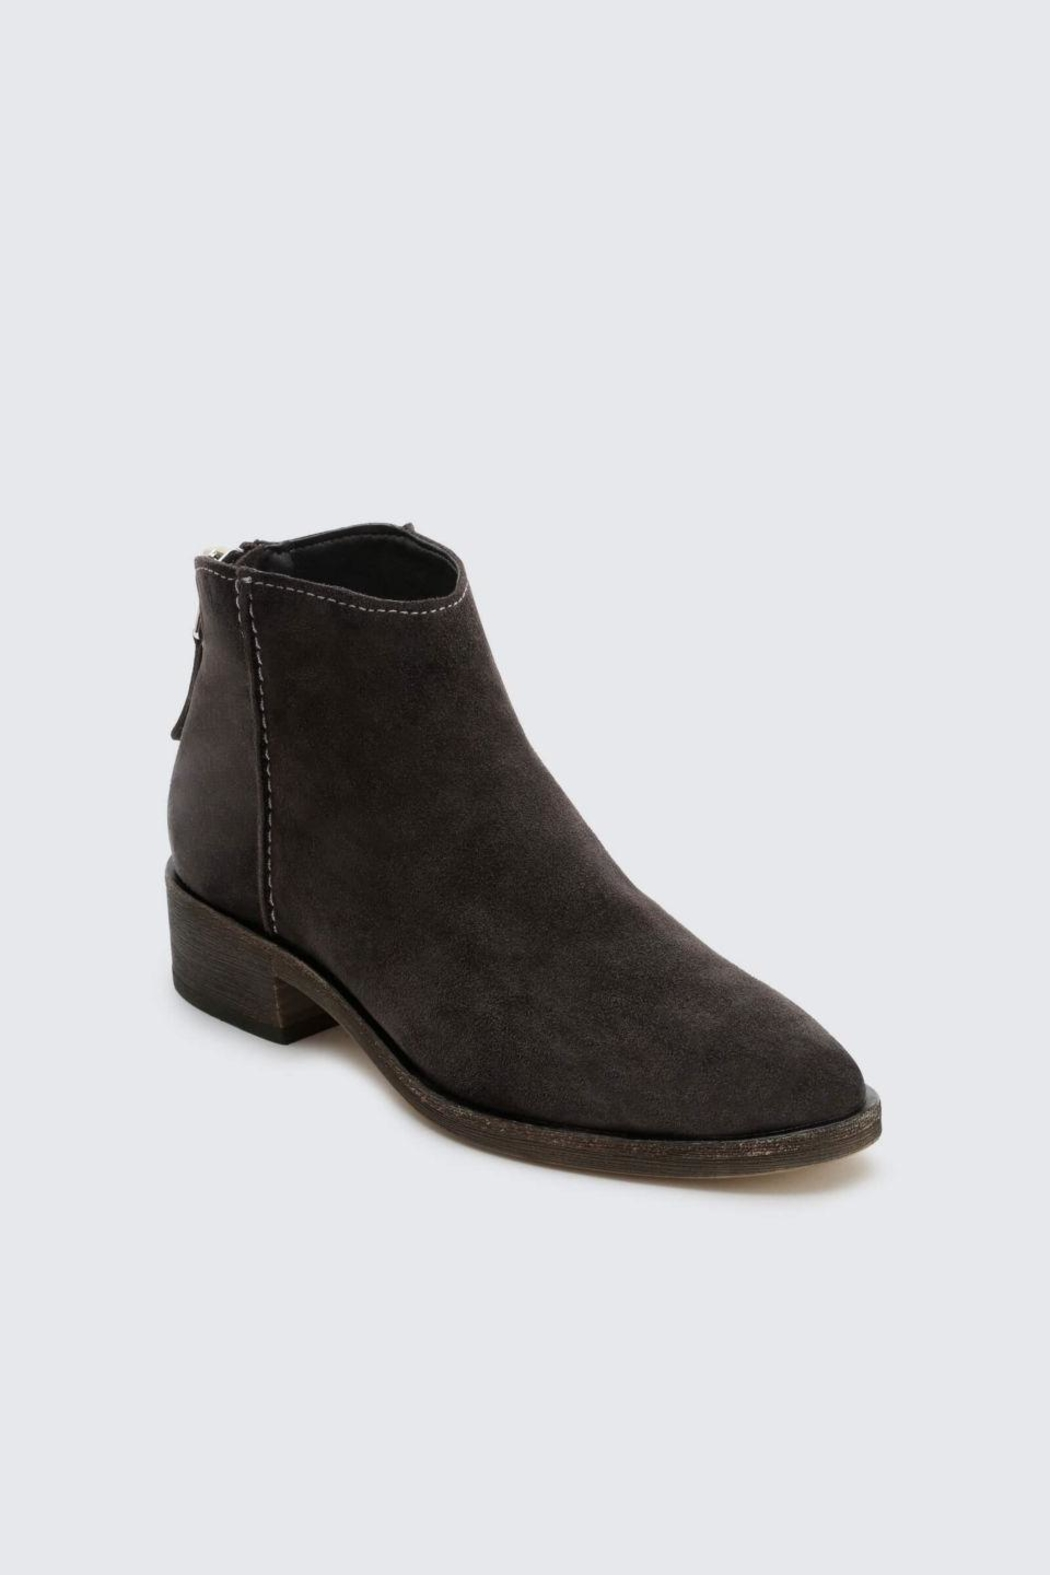 Dolce Vita Anthracite Tucker Booties - Front Full Image